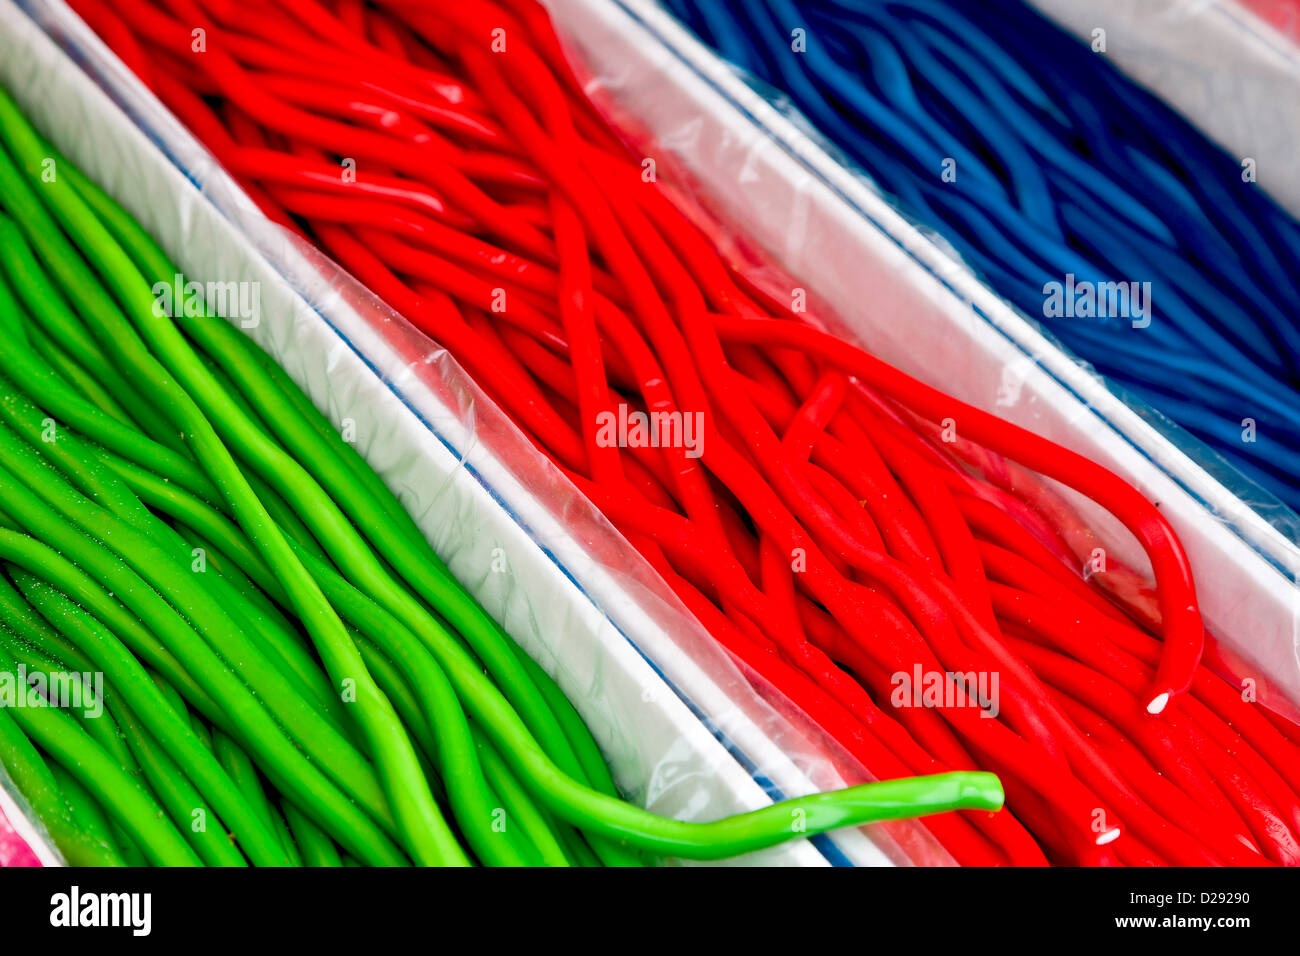 Colourful sweets in long lengths - Stock Image